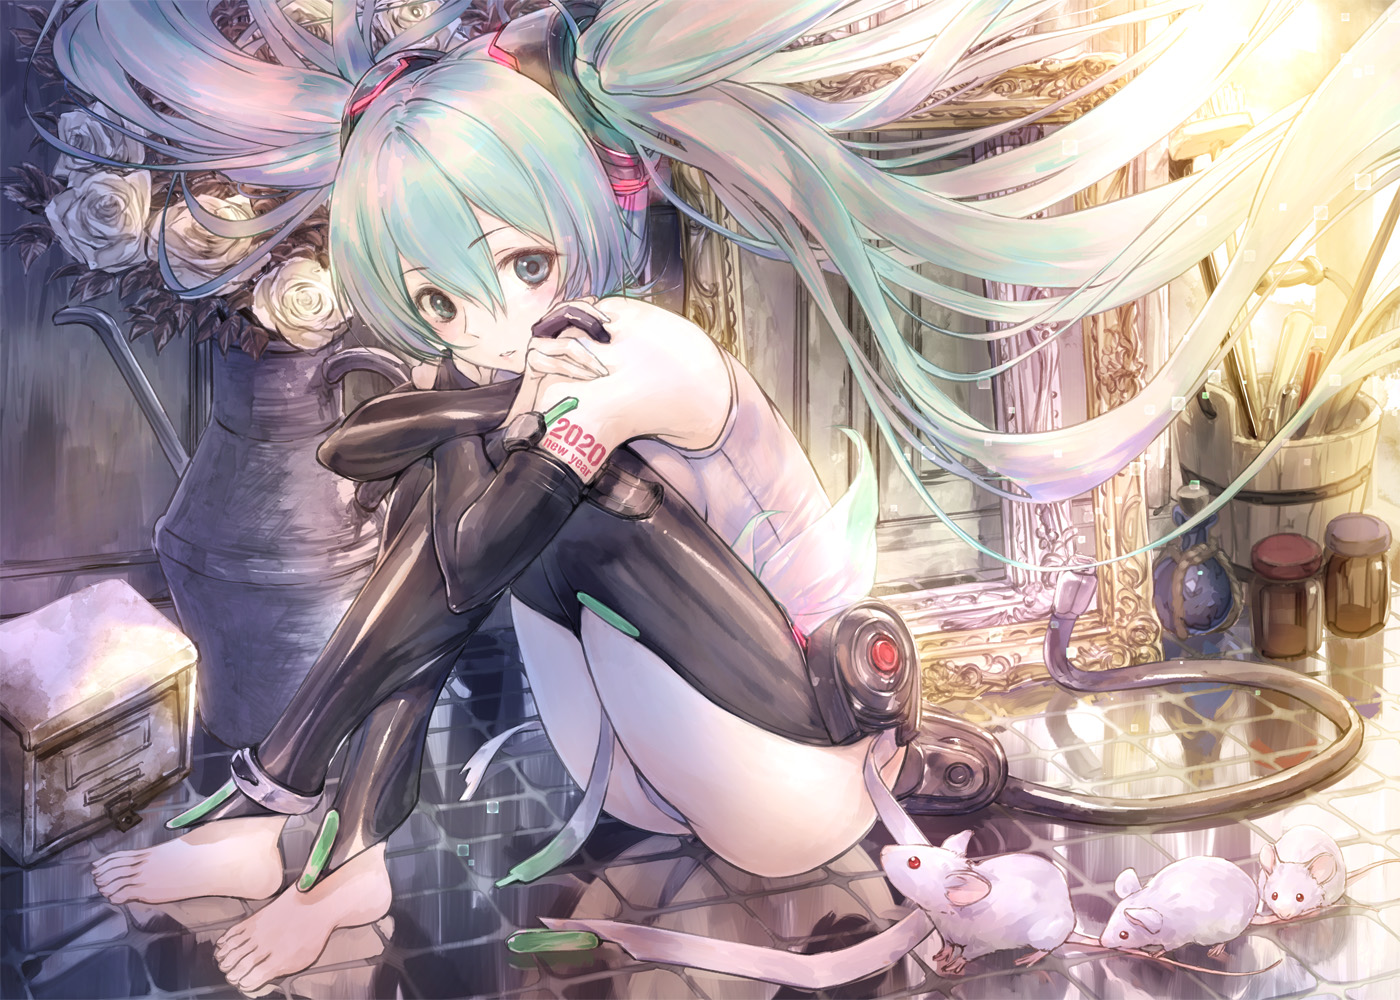 animal barefoot blue_eyes blue_hair ek_masato elbow_gloves flowers gloves hatsune_miku long_hair miku_append mouse reflection tattoo twintails vocaloid